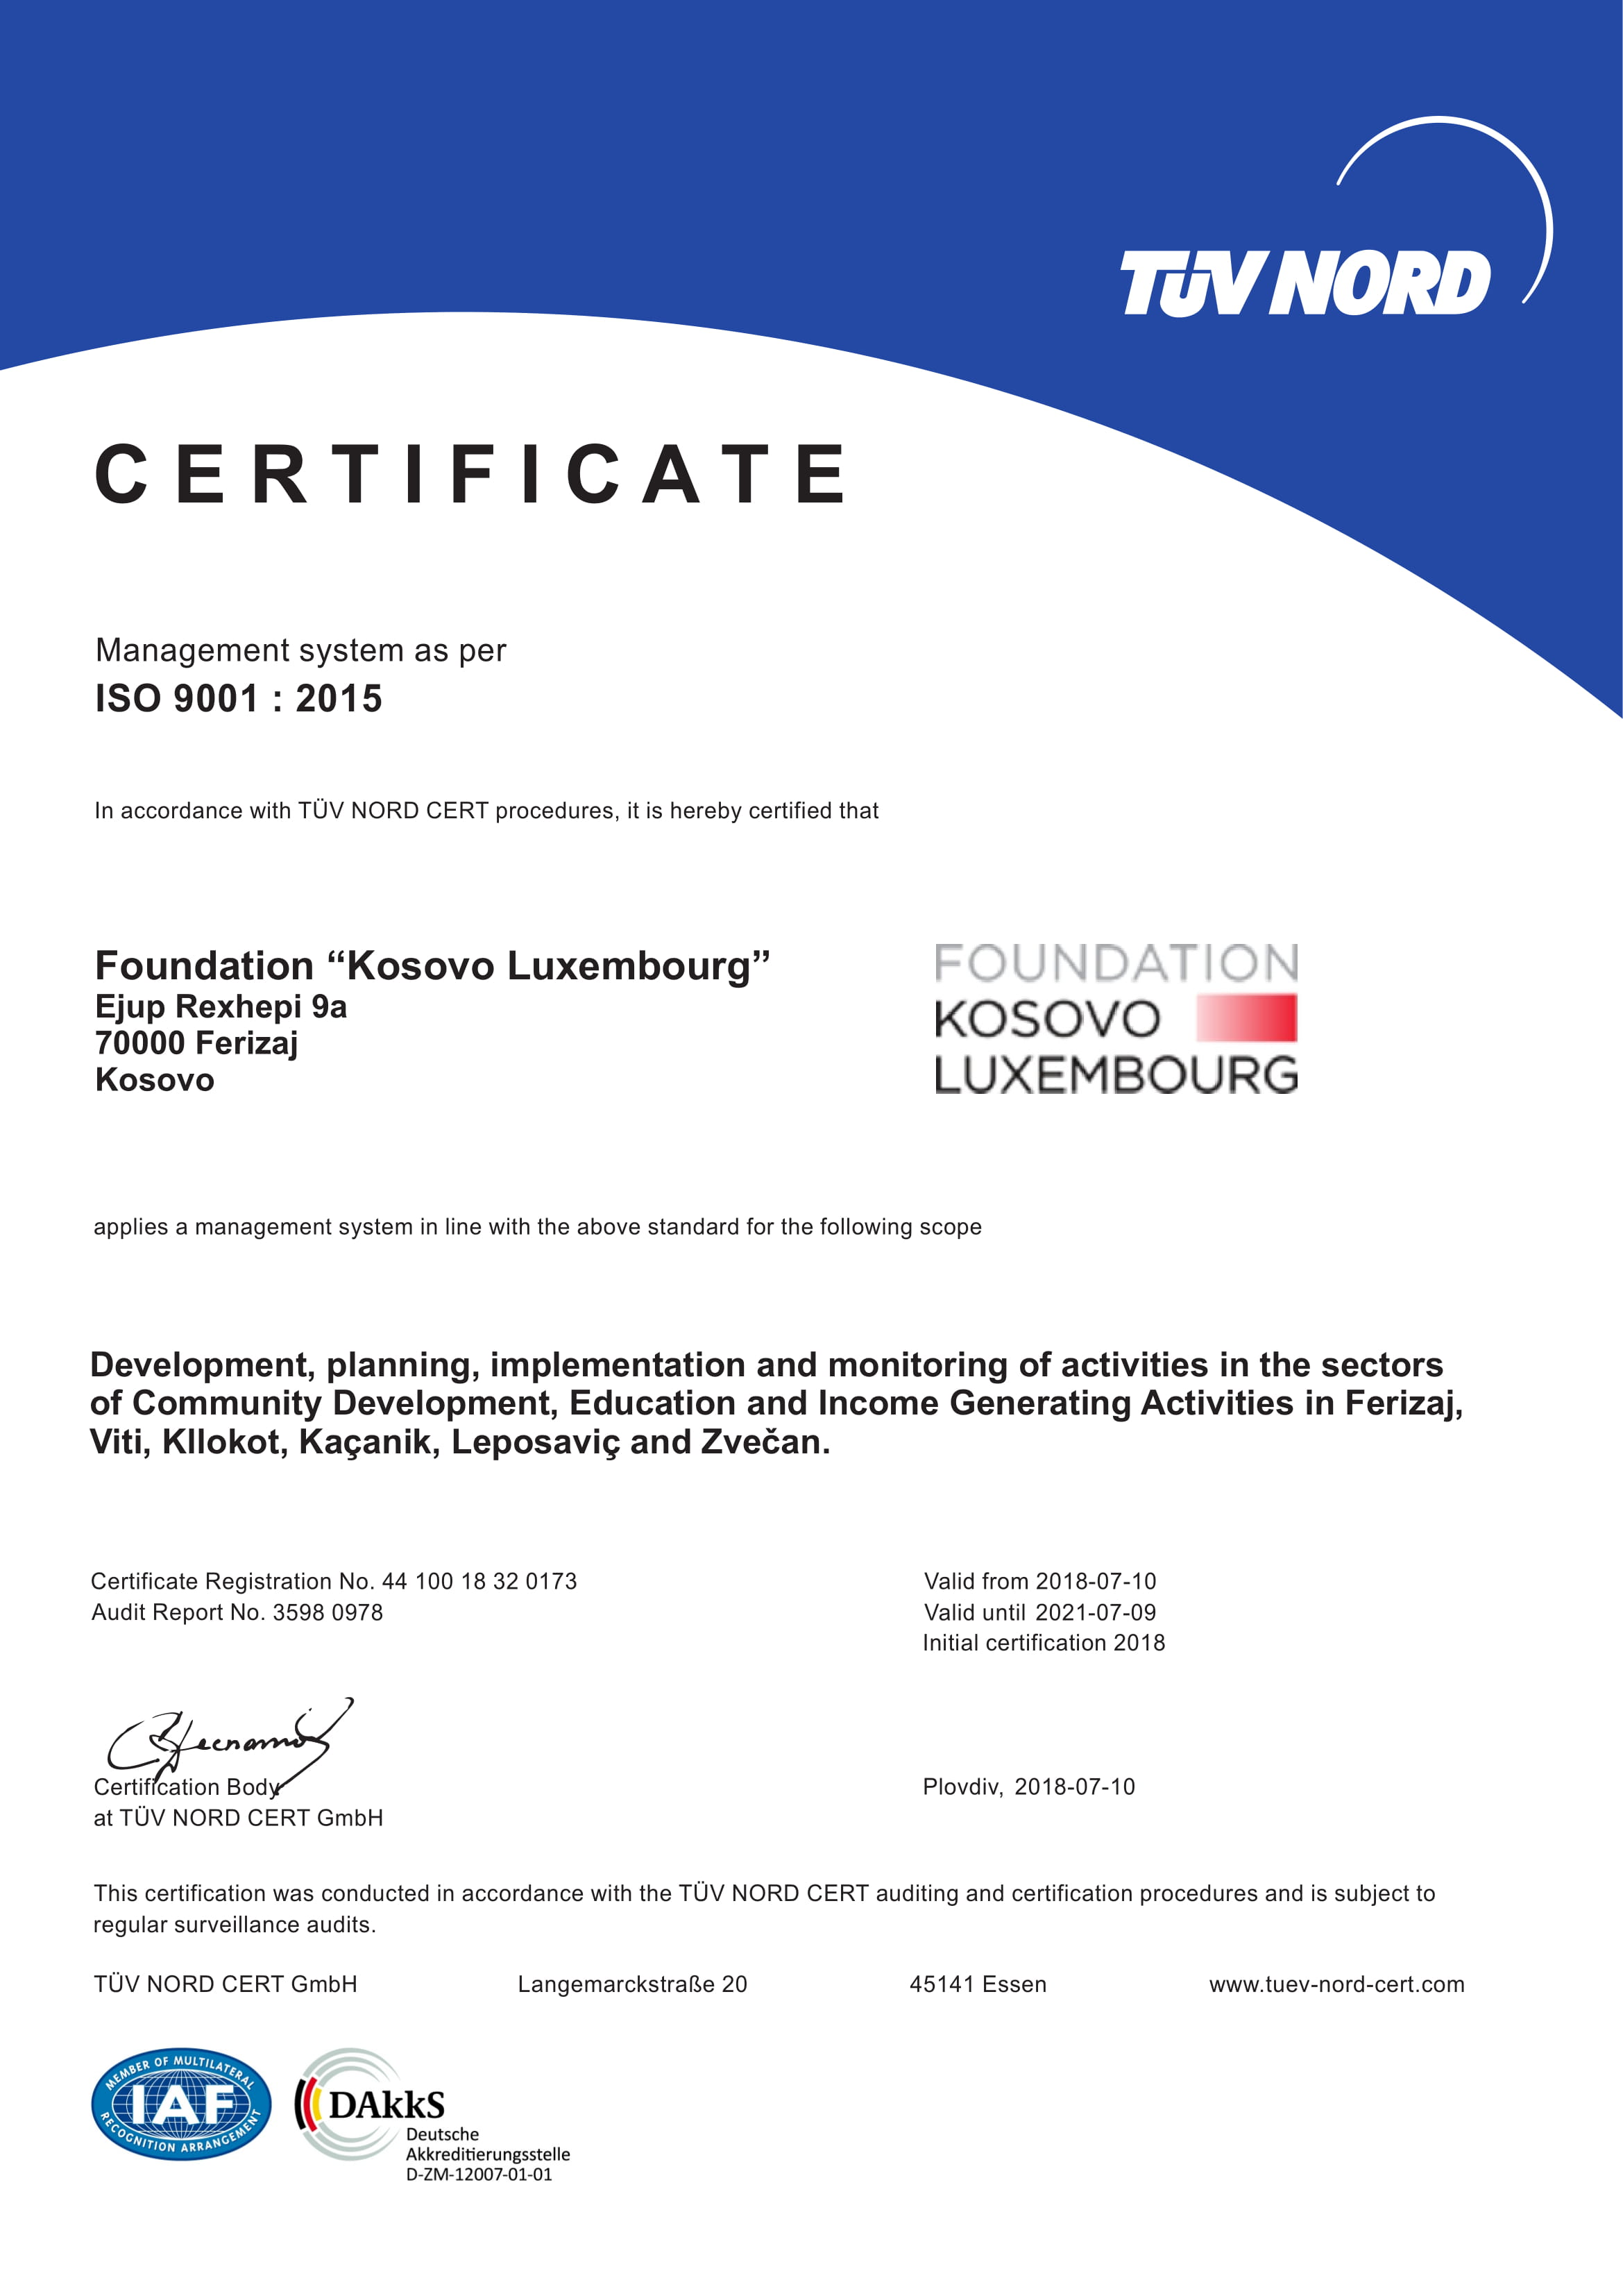 Foundation Kosovo Luxembourg Has Been Granted Iso 90012015 Quality